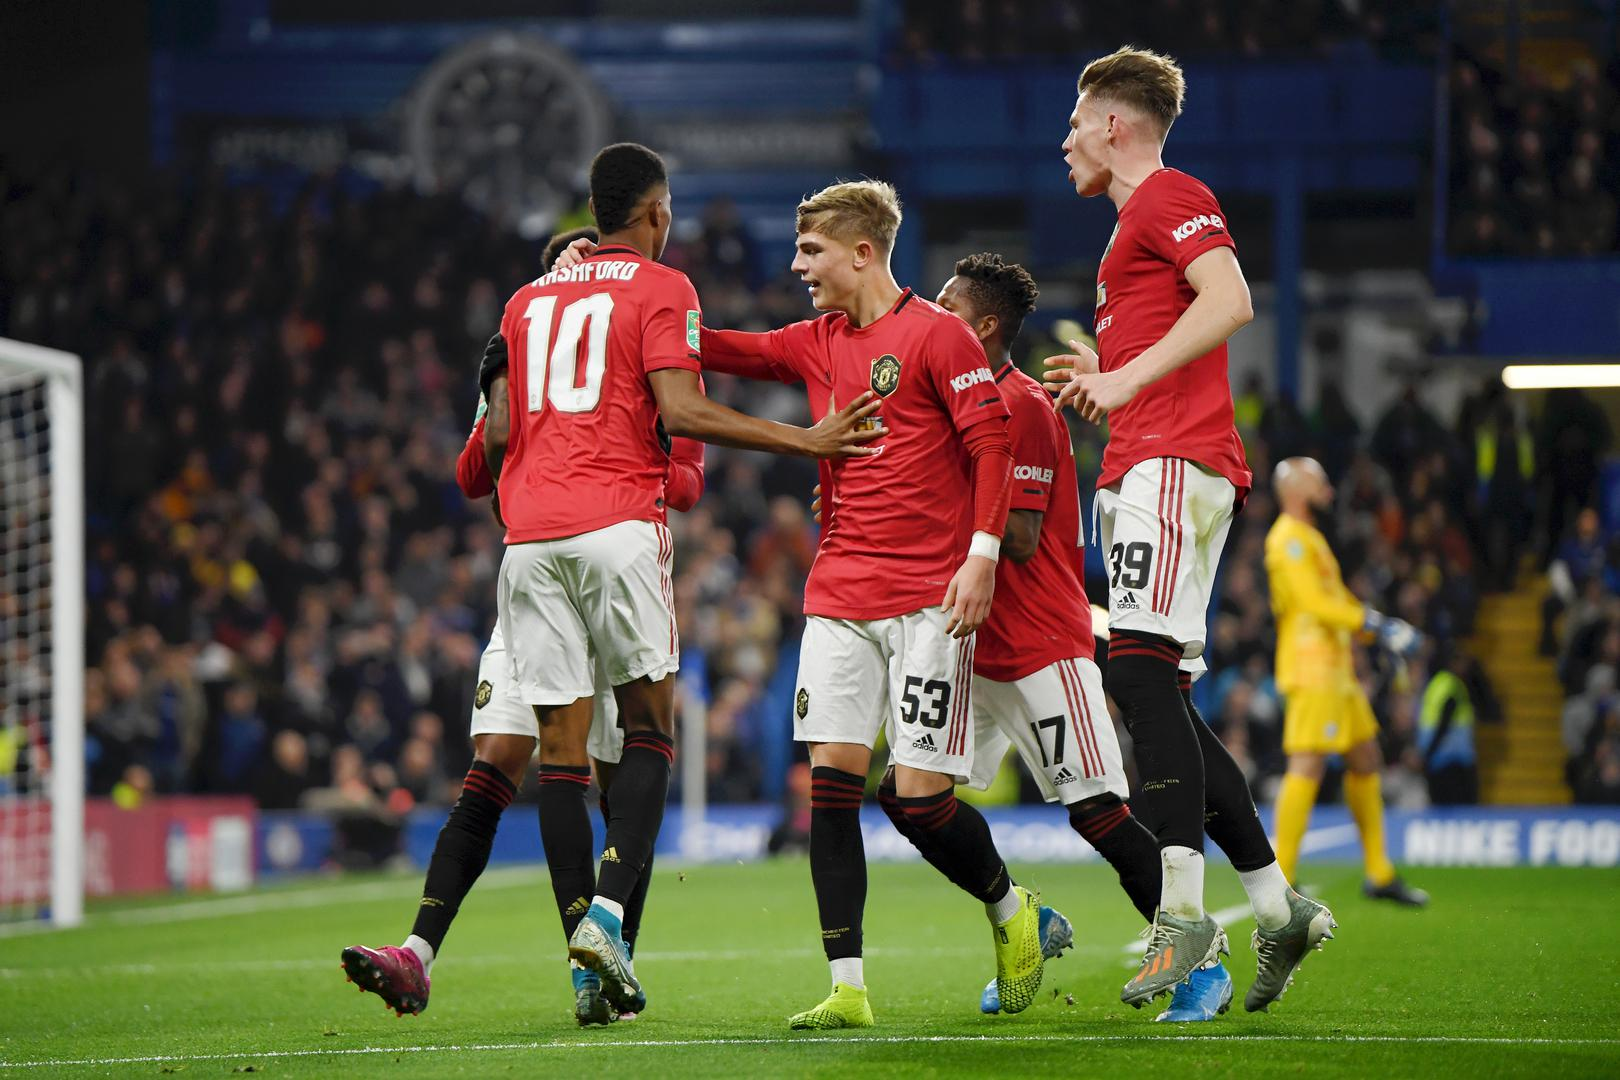 Brandon Williams and Scott McTominay help to celebrate one of Marcus Rashford's goals against Chelsea,